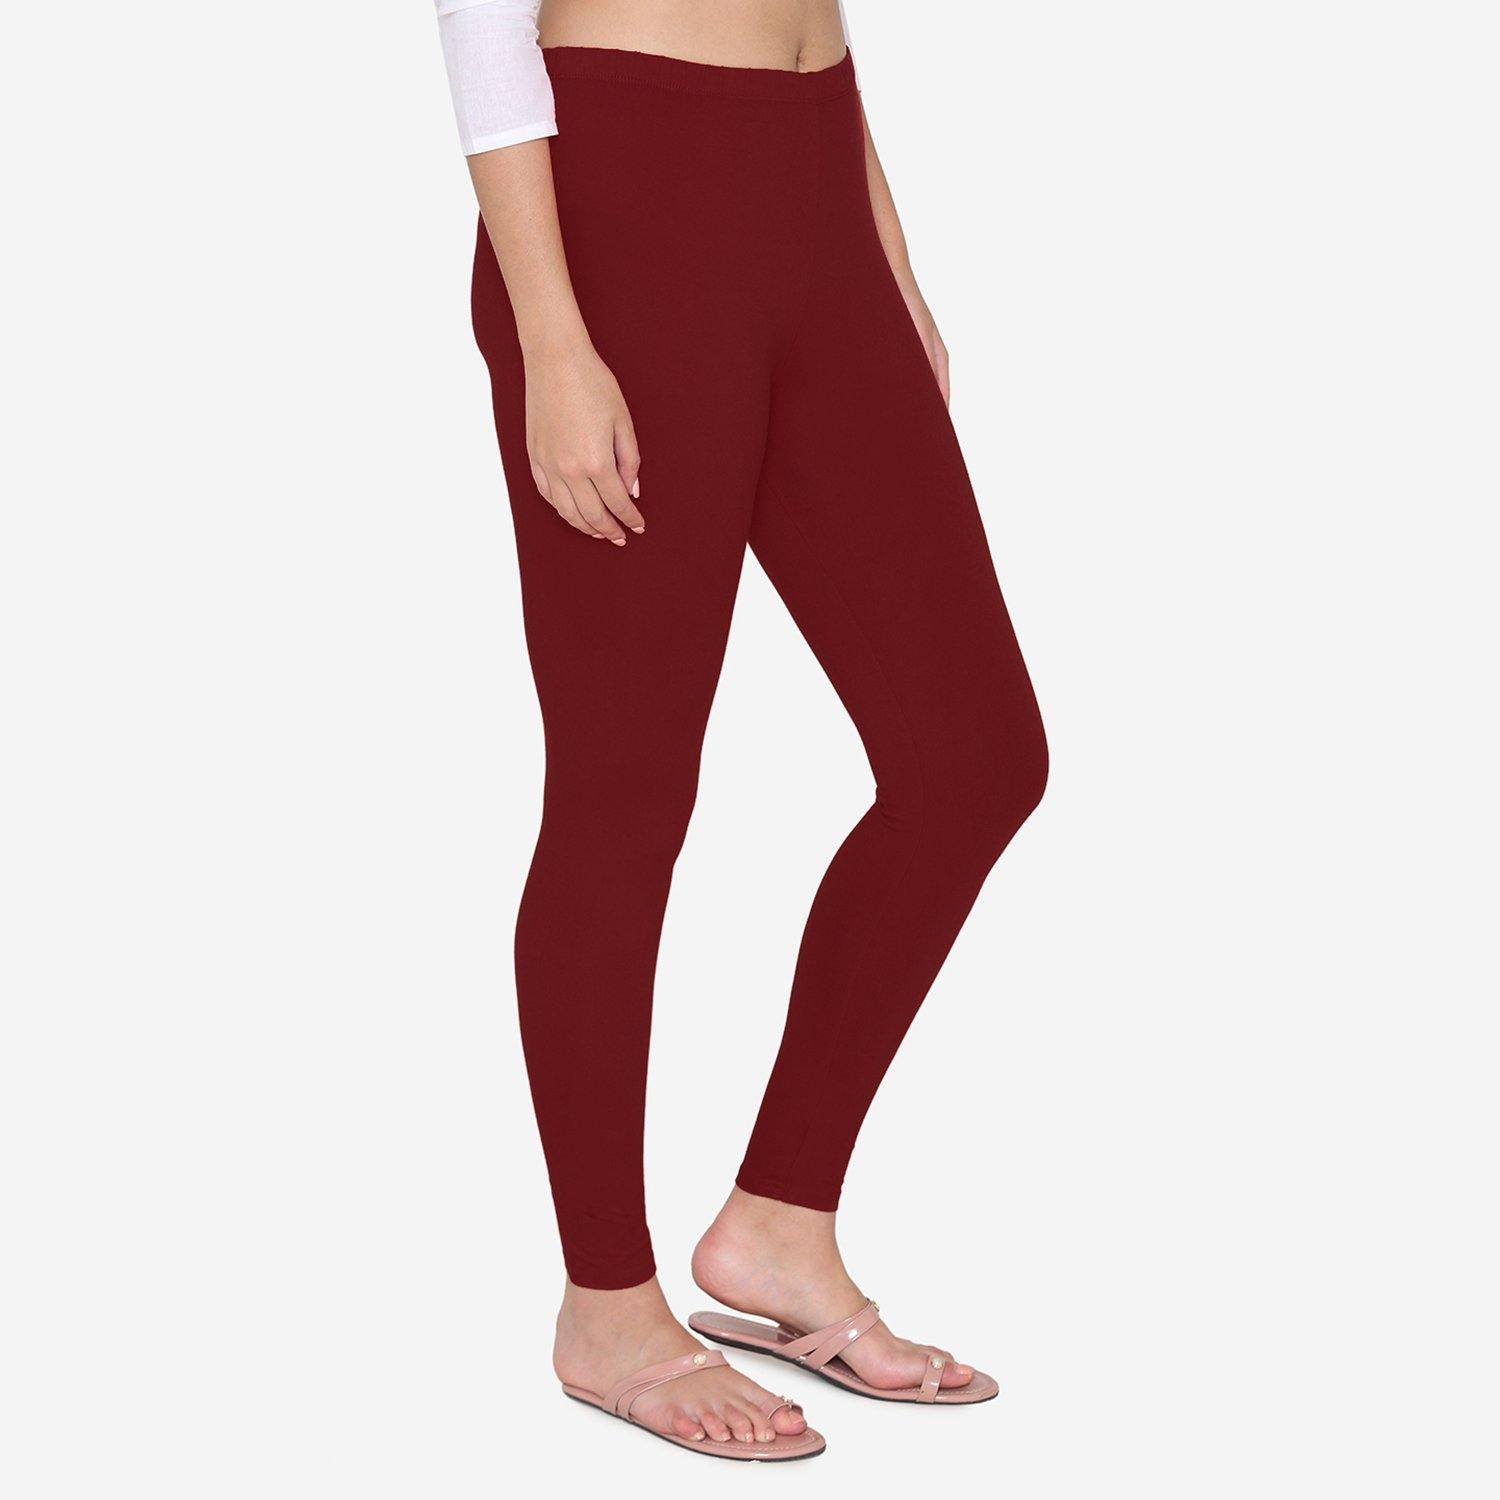 Vami Women's Cotton Stretchable Ankle Leggings - Dark Maroon